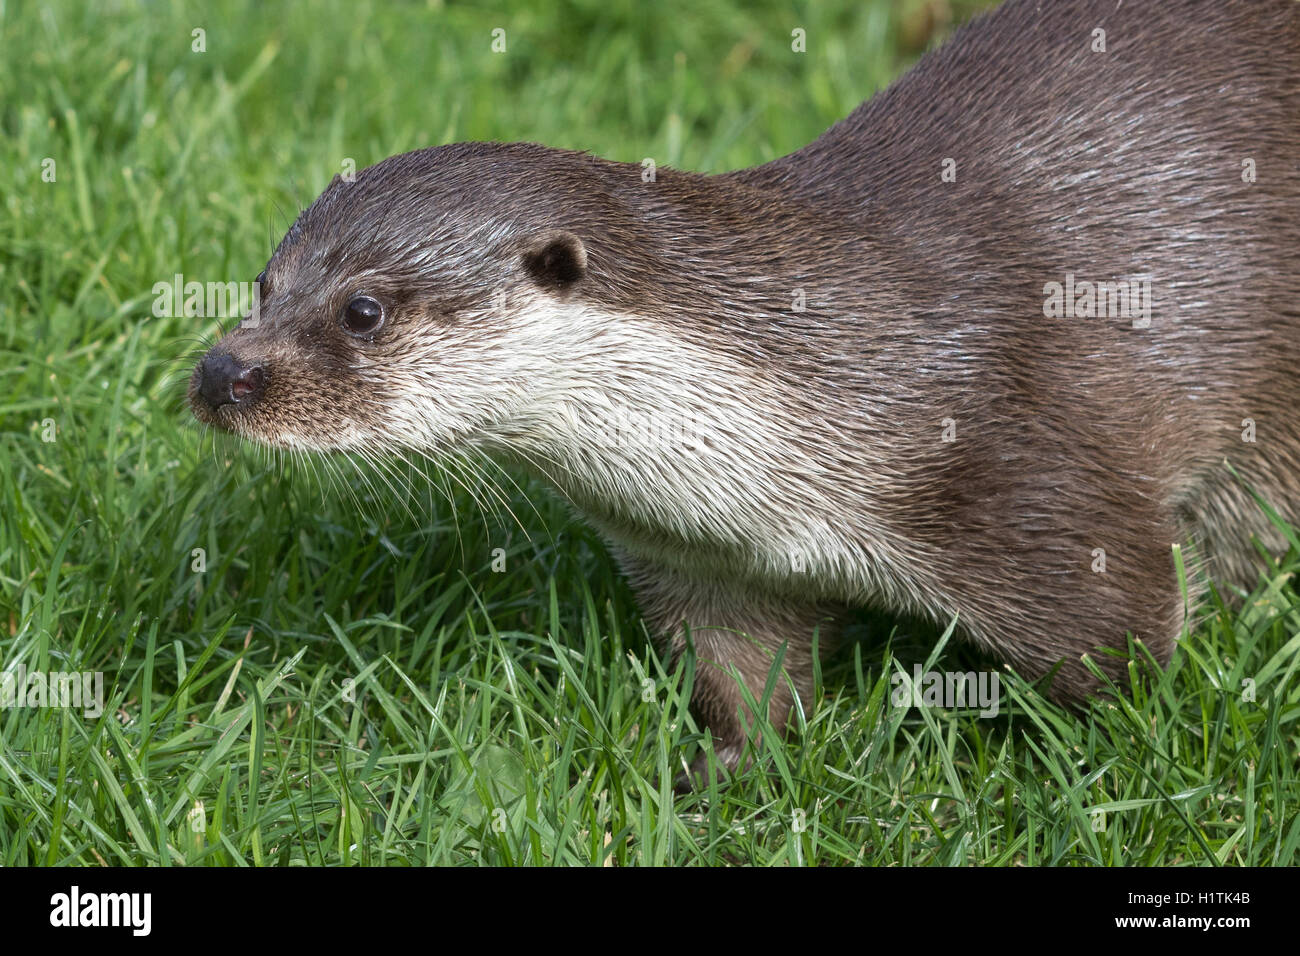 Otter (Lutra lutra) in the wild - Stock Image